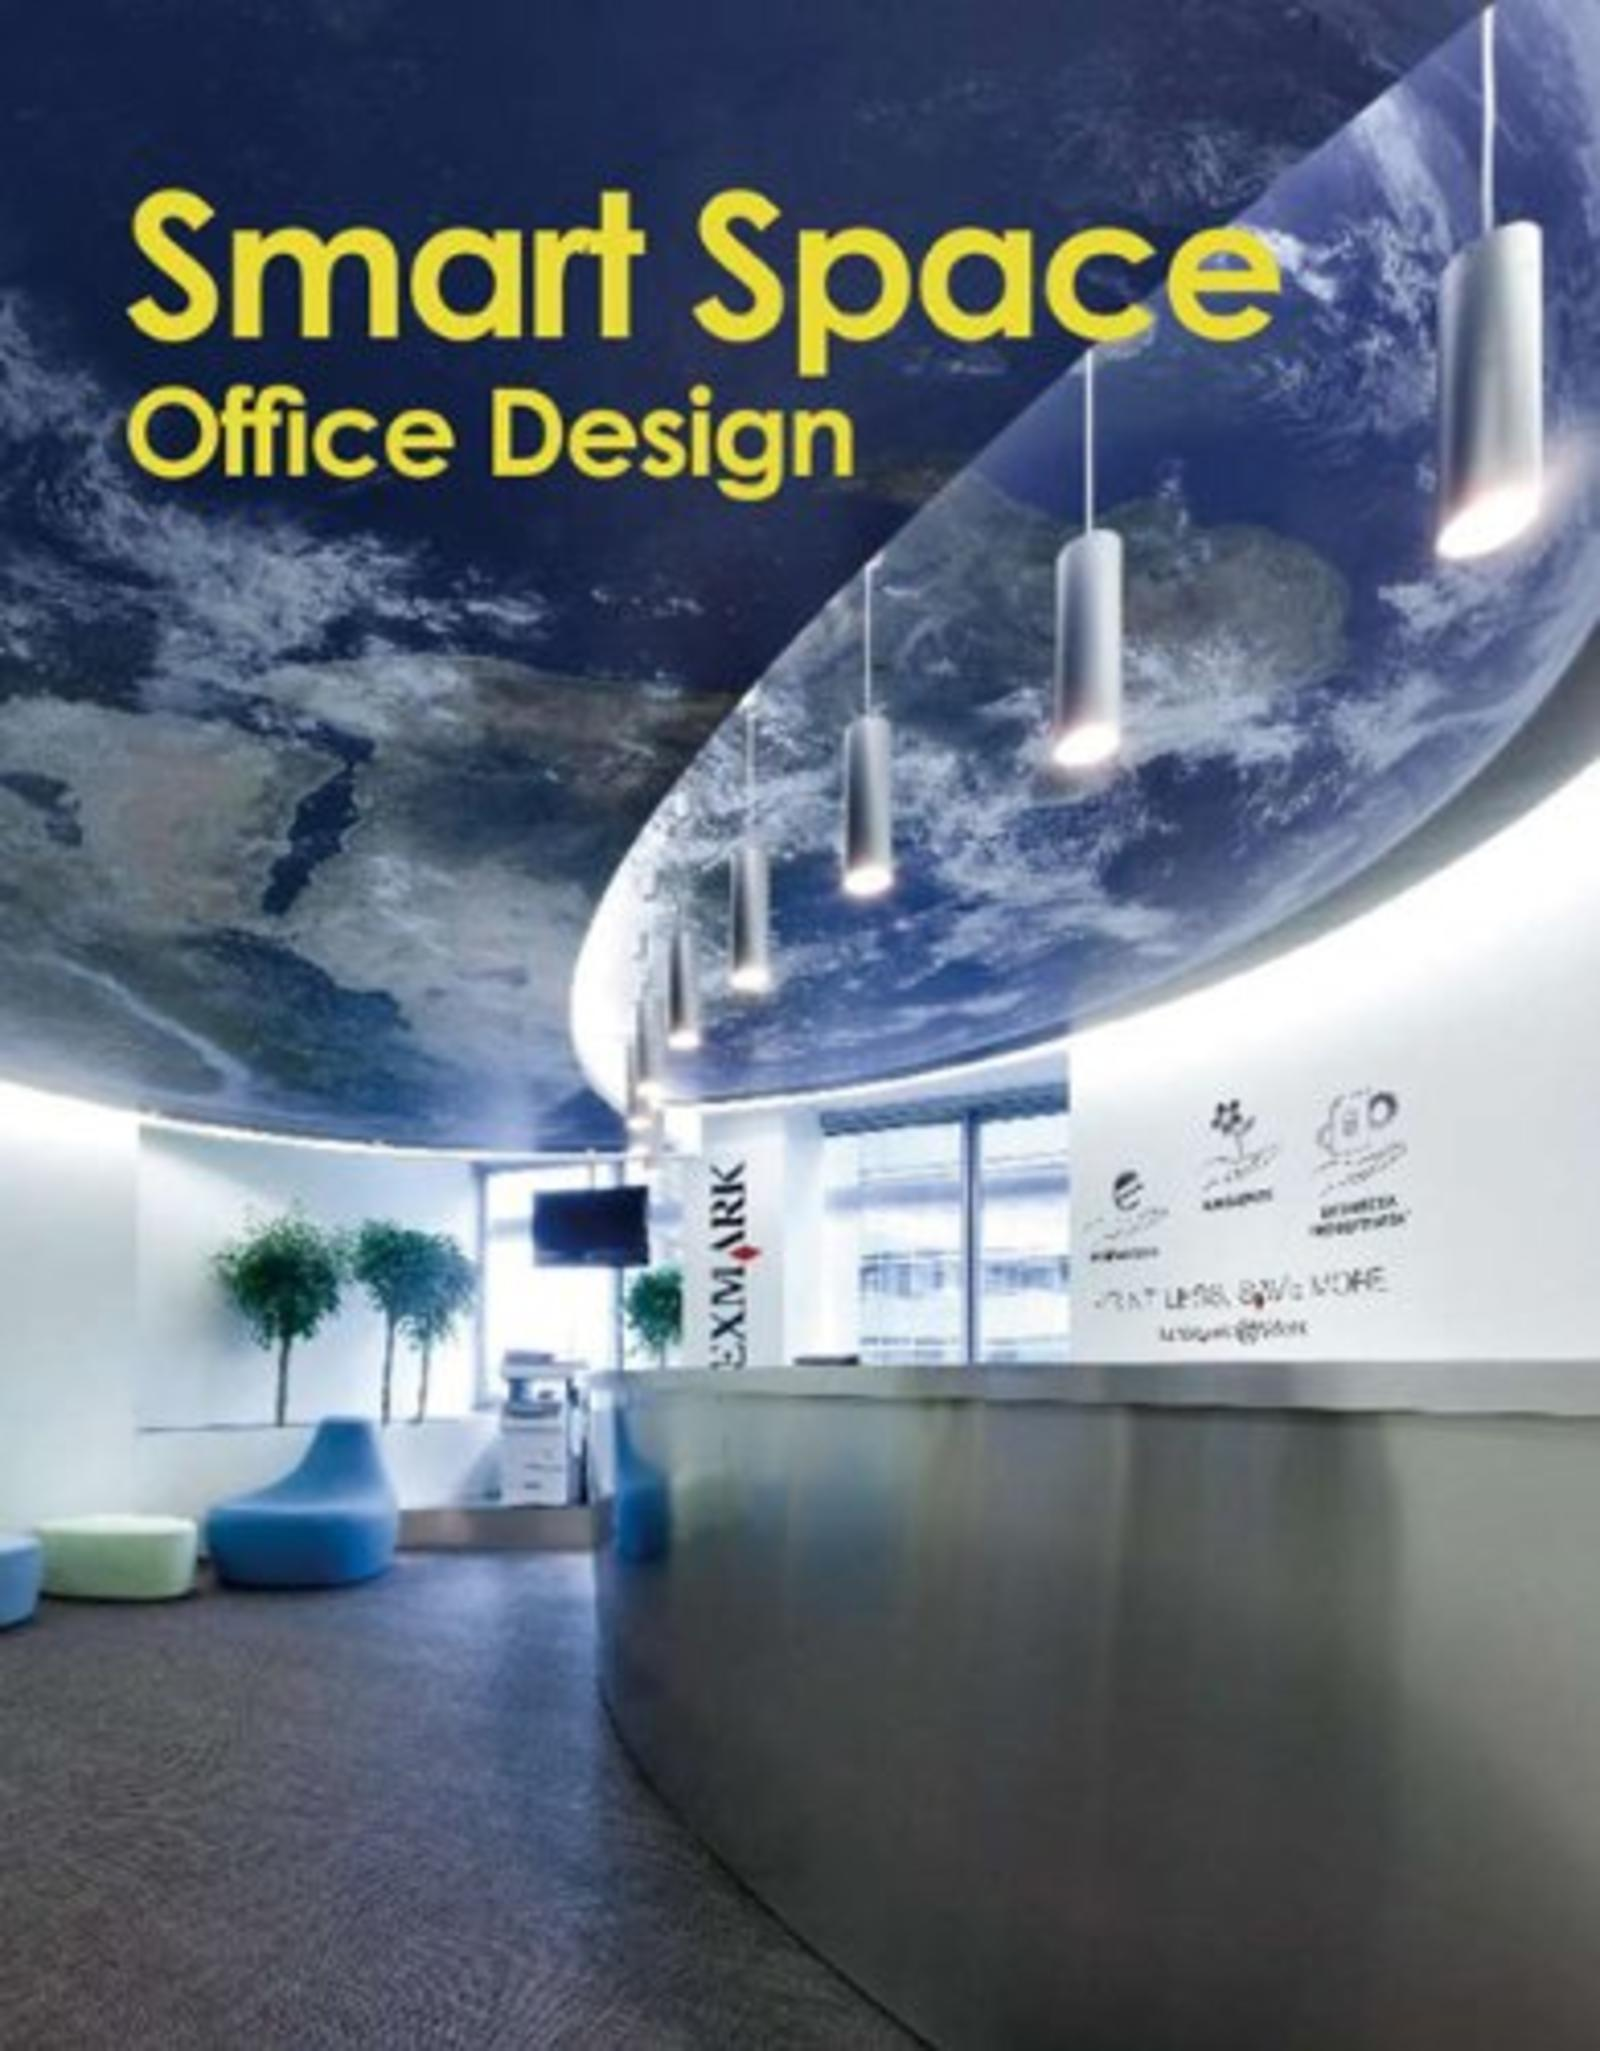 SMART SPACE OFFICE DESIGN - OFFICE DESIGN.